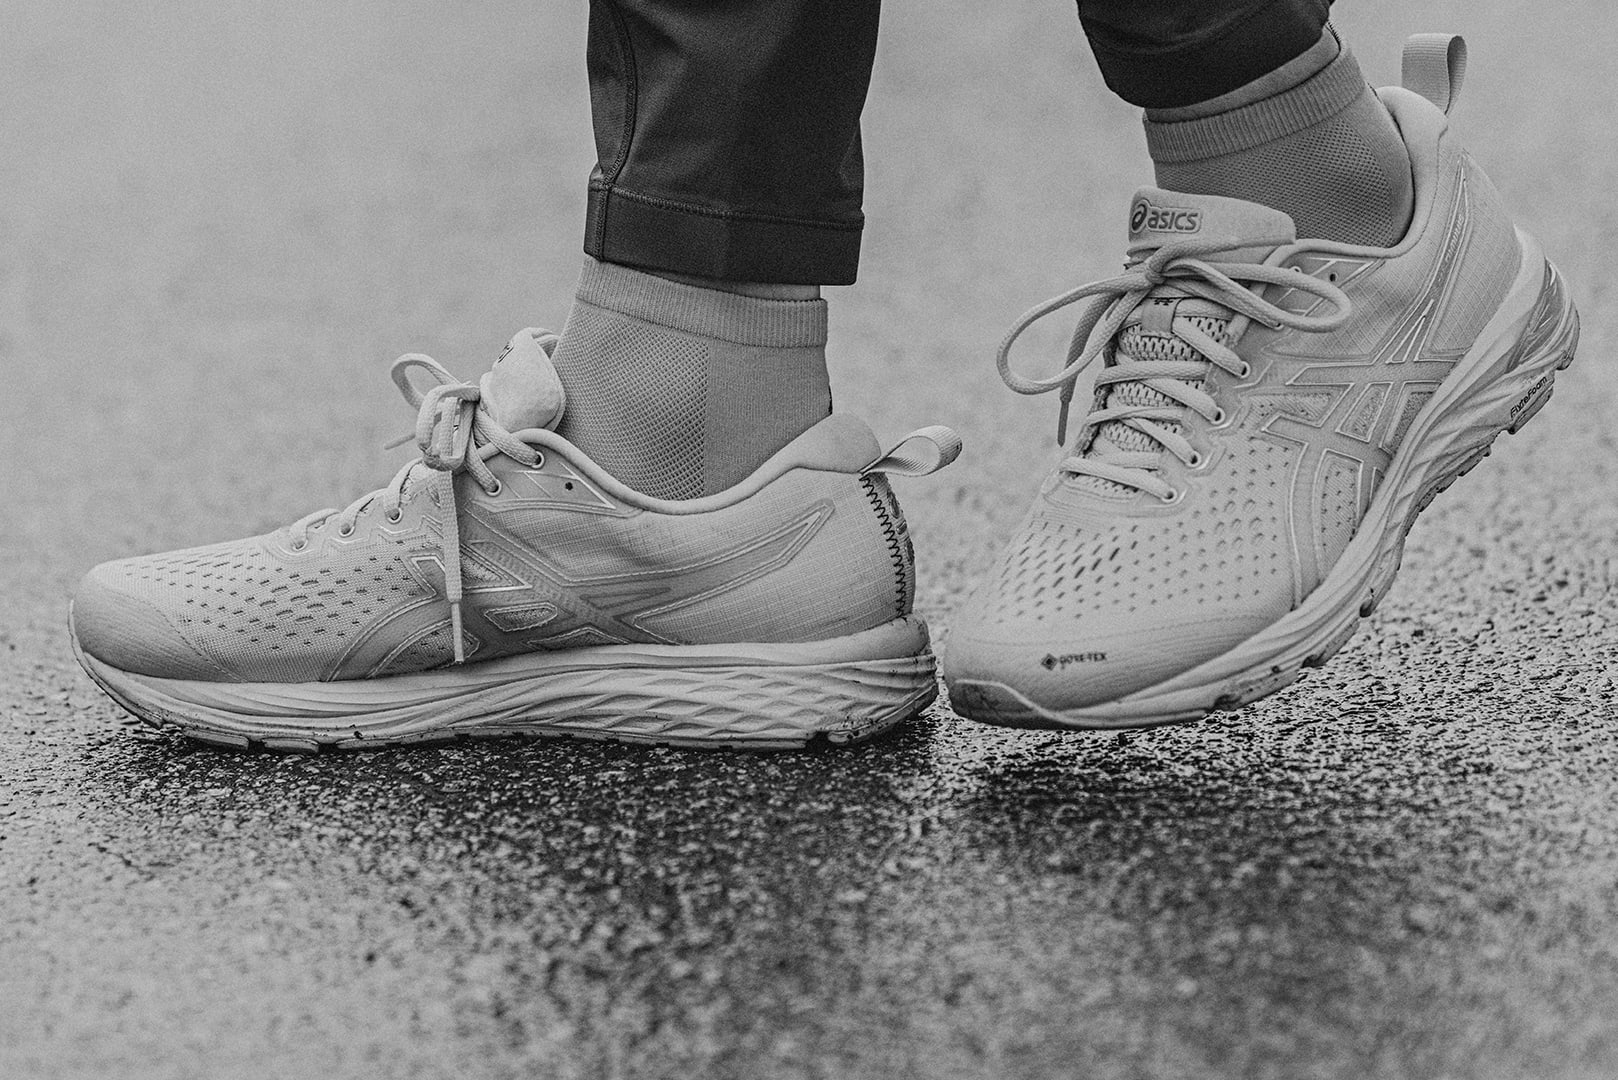 ASICS x Reigning Champ editorial featuring Jess Booi